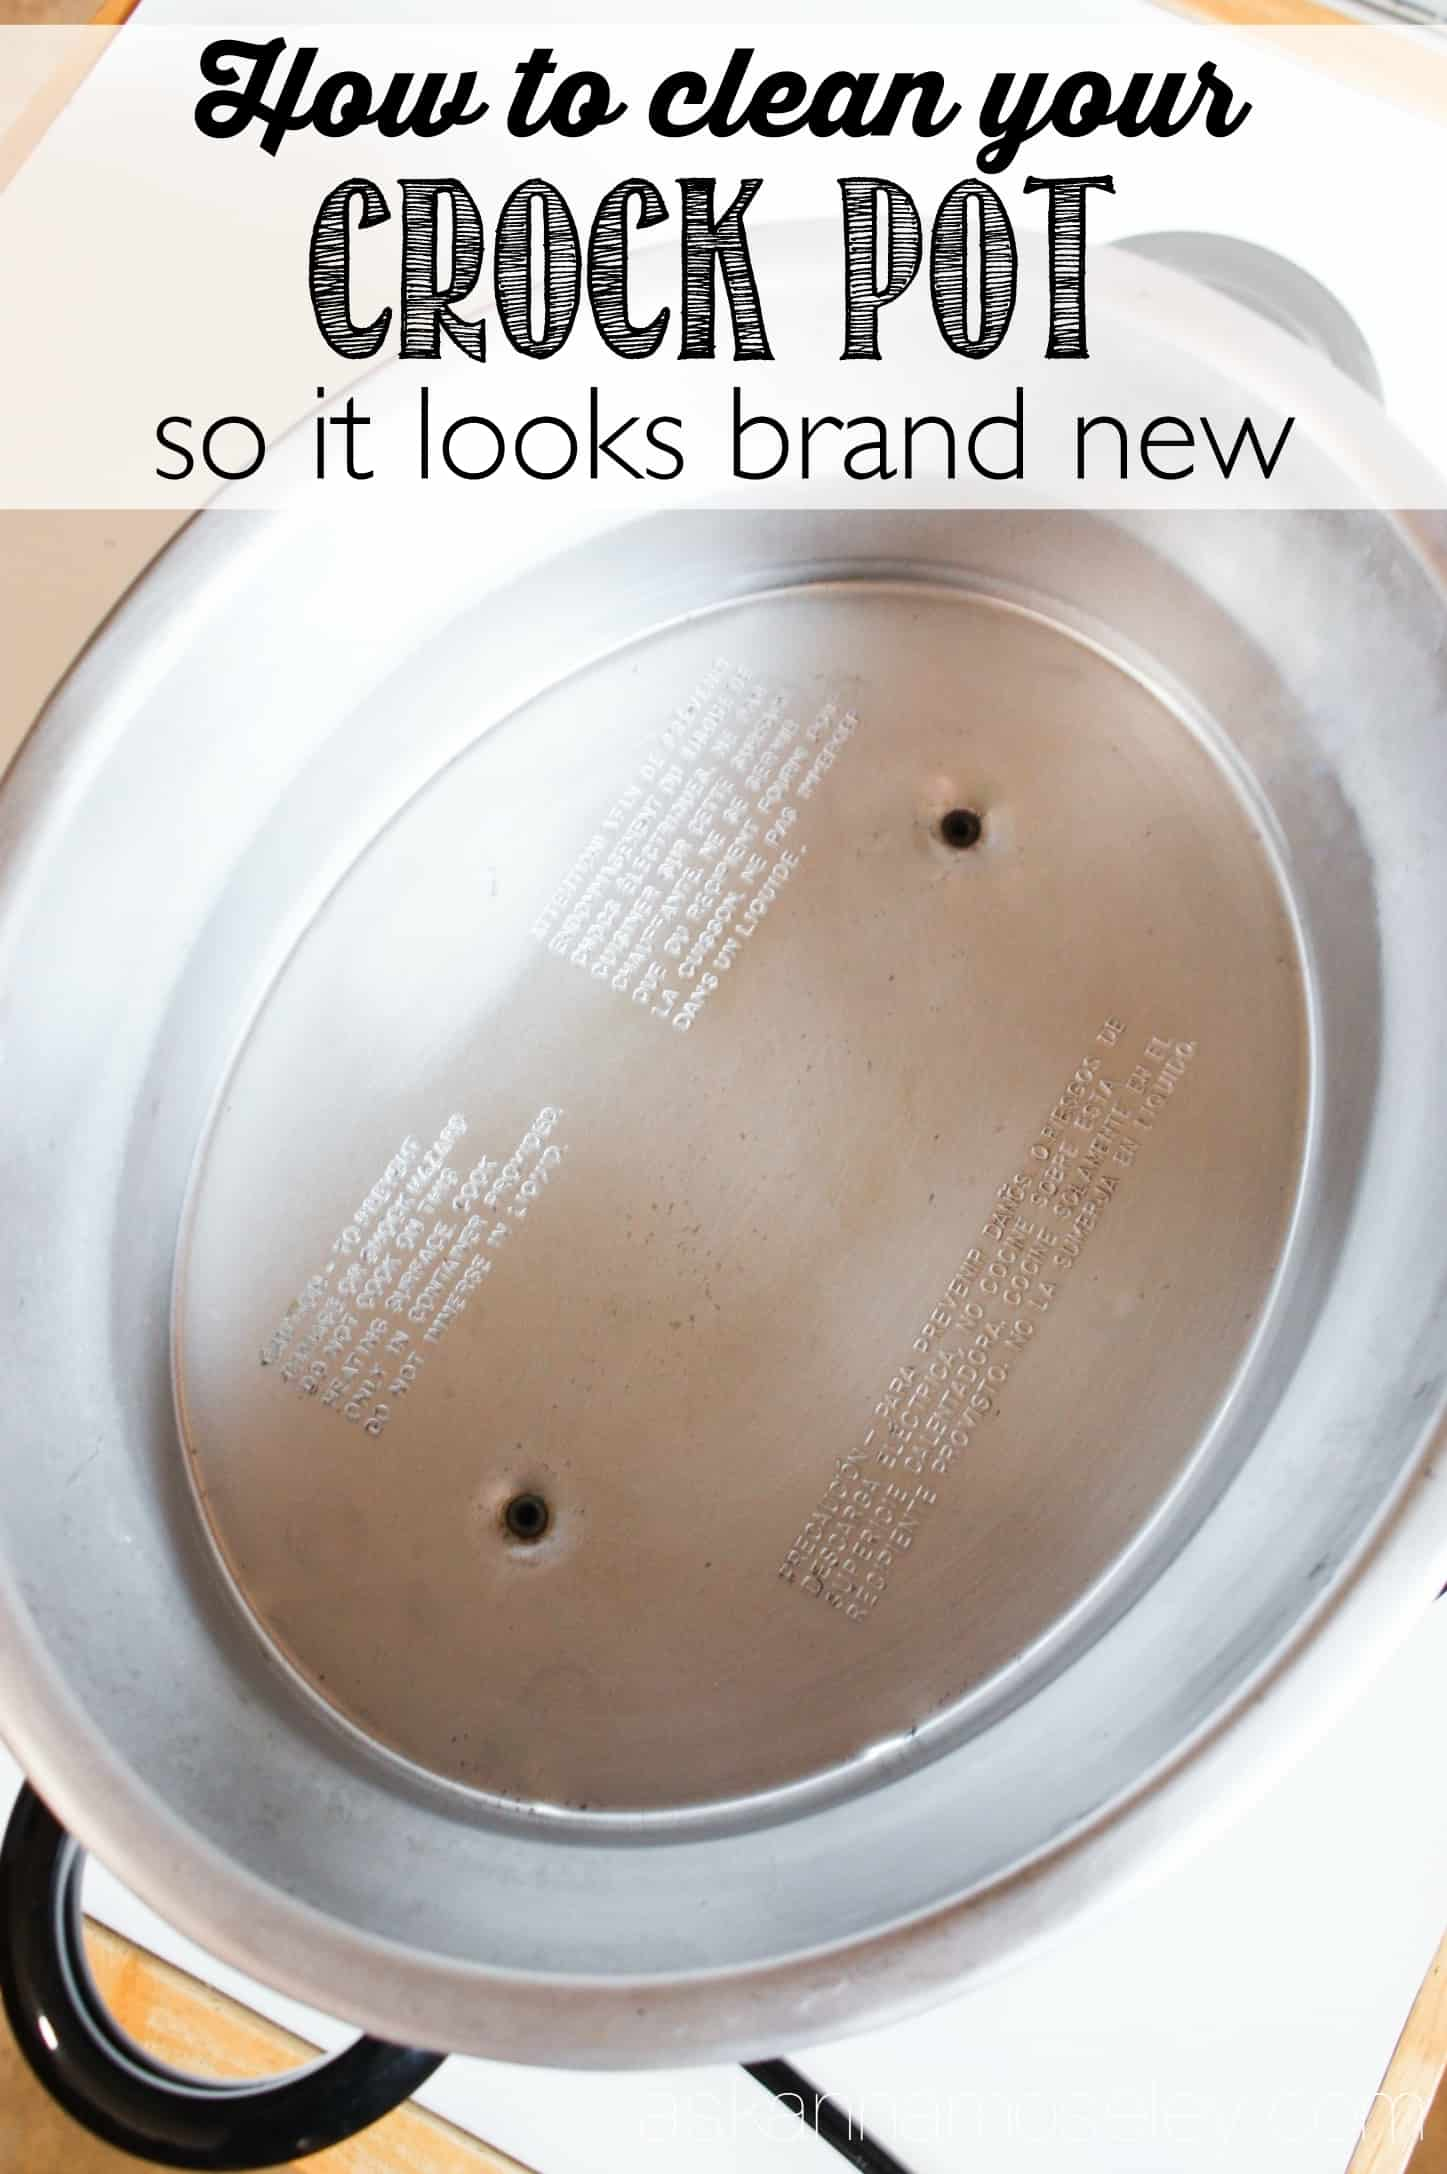 How To Clean A Crock Pot To Make It Look Brand New Ask Anna